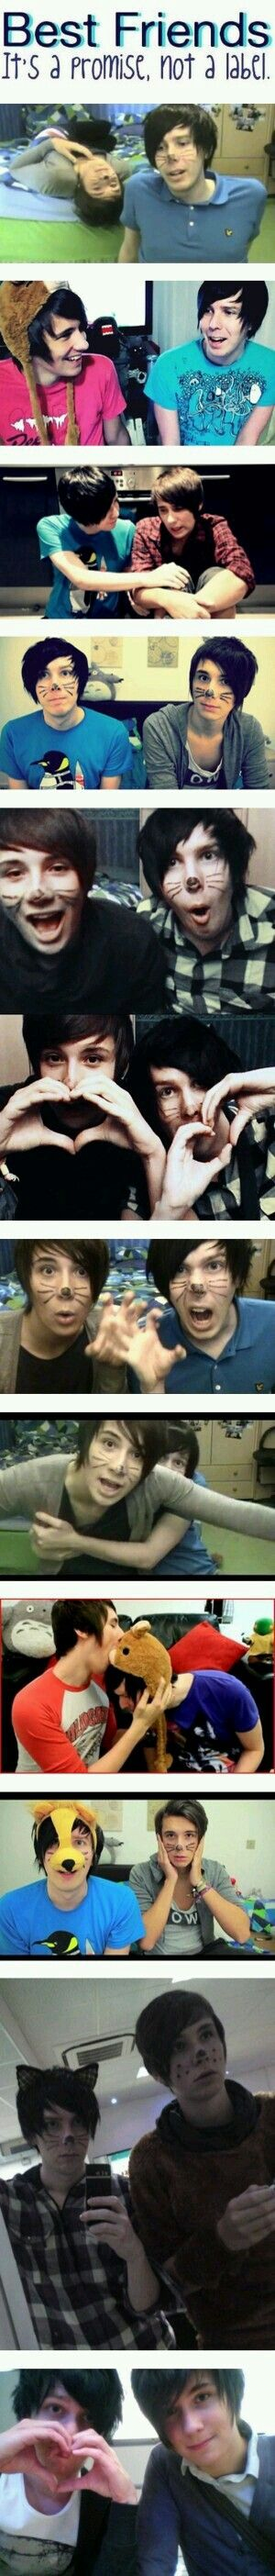 I hate it when people say phan is real i mean they have only had girlfriends so STOP